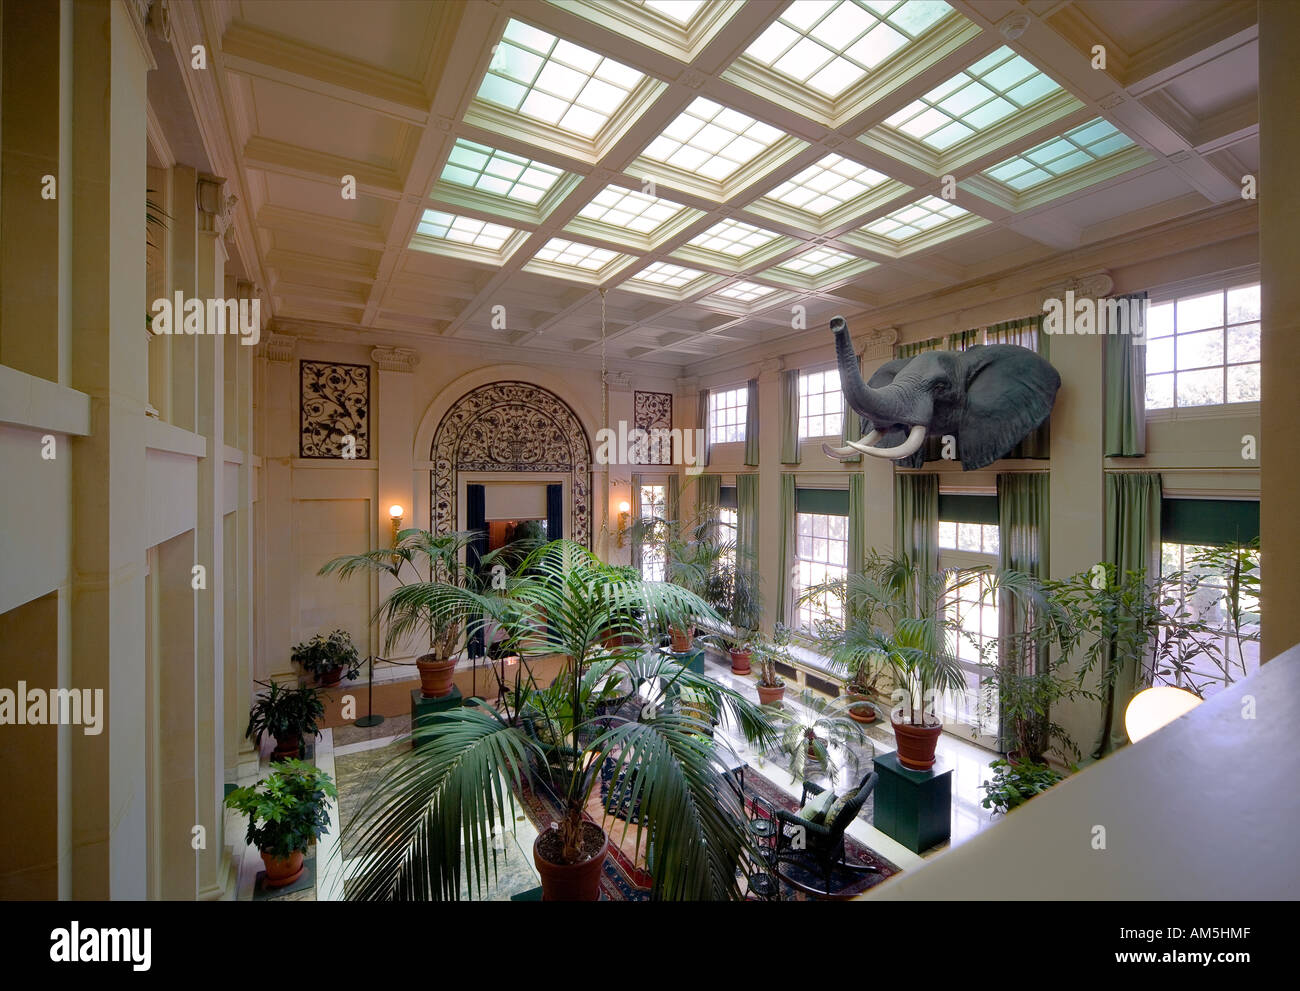 Rochester NY George Eastman House International Museum of Photography and Film Stock Photo